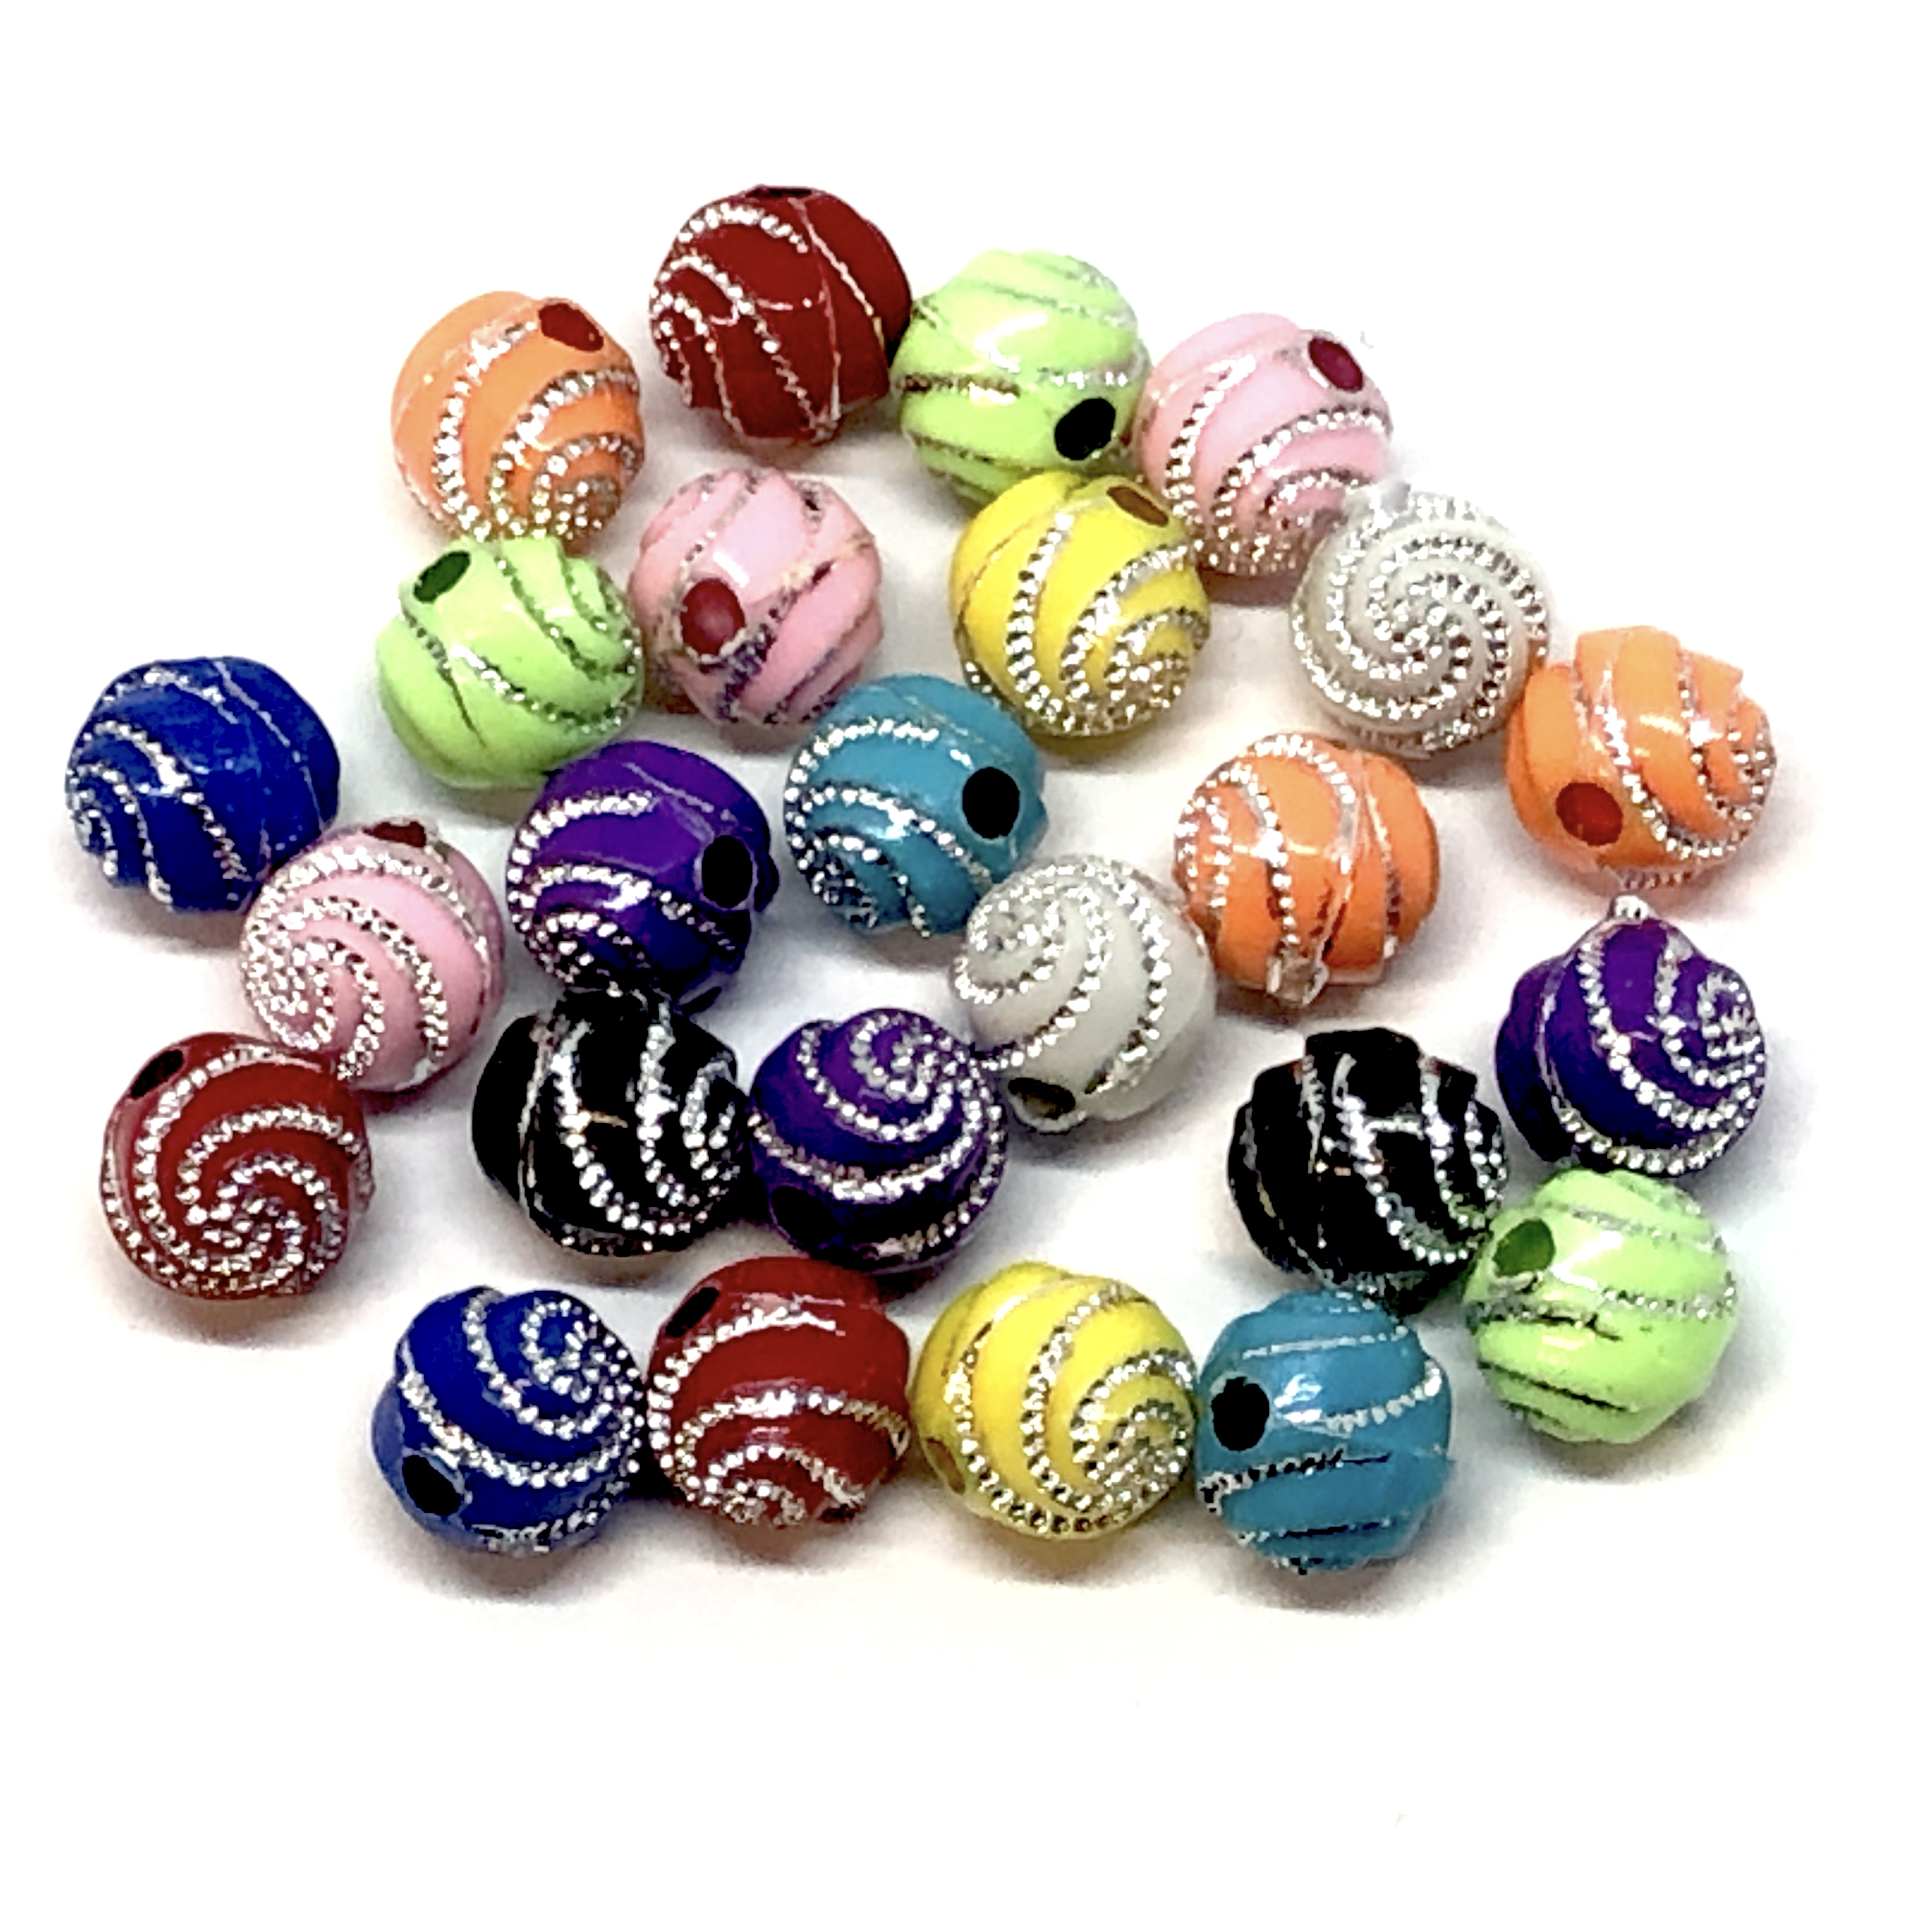 Acrylic Swirl Pattern Beads, Metal Accent, 09200, multi color, rainbow colors, assorted beads, 8x8mm, beads, colorful, multi-color beads, assorted colors, plastic beads, acrylic beads, bead mix, beading supplies